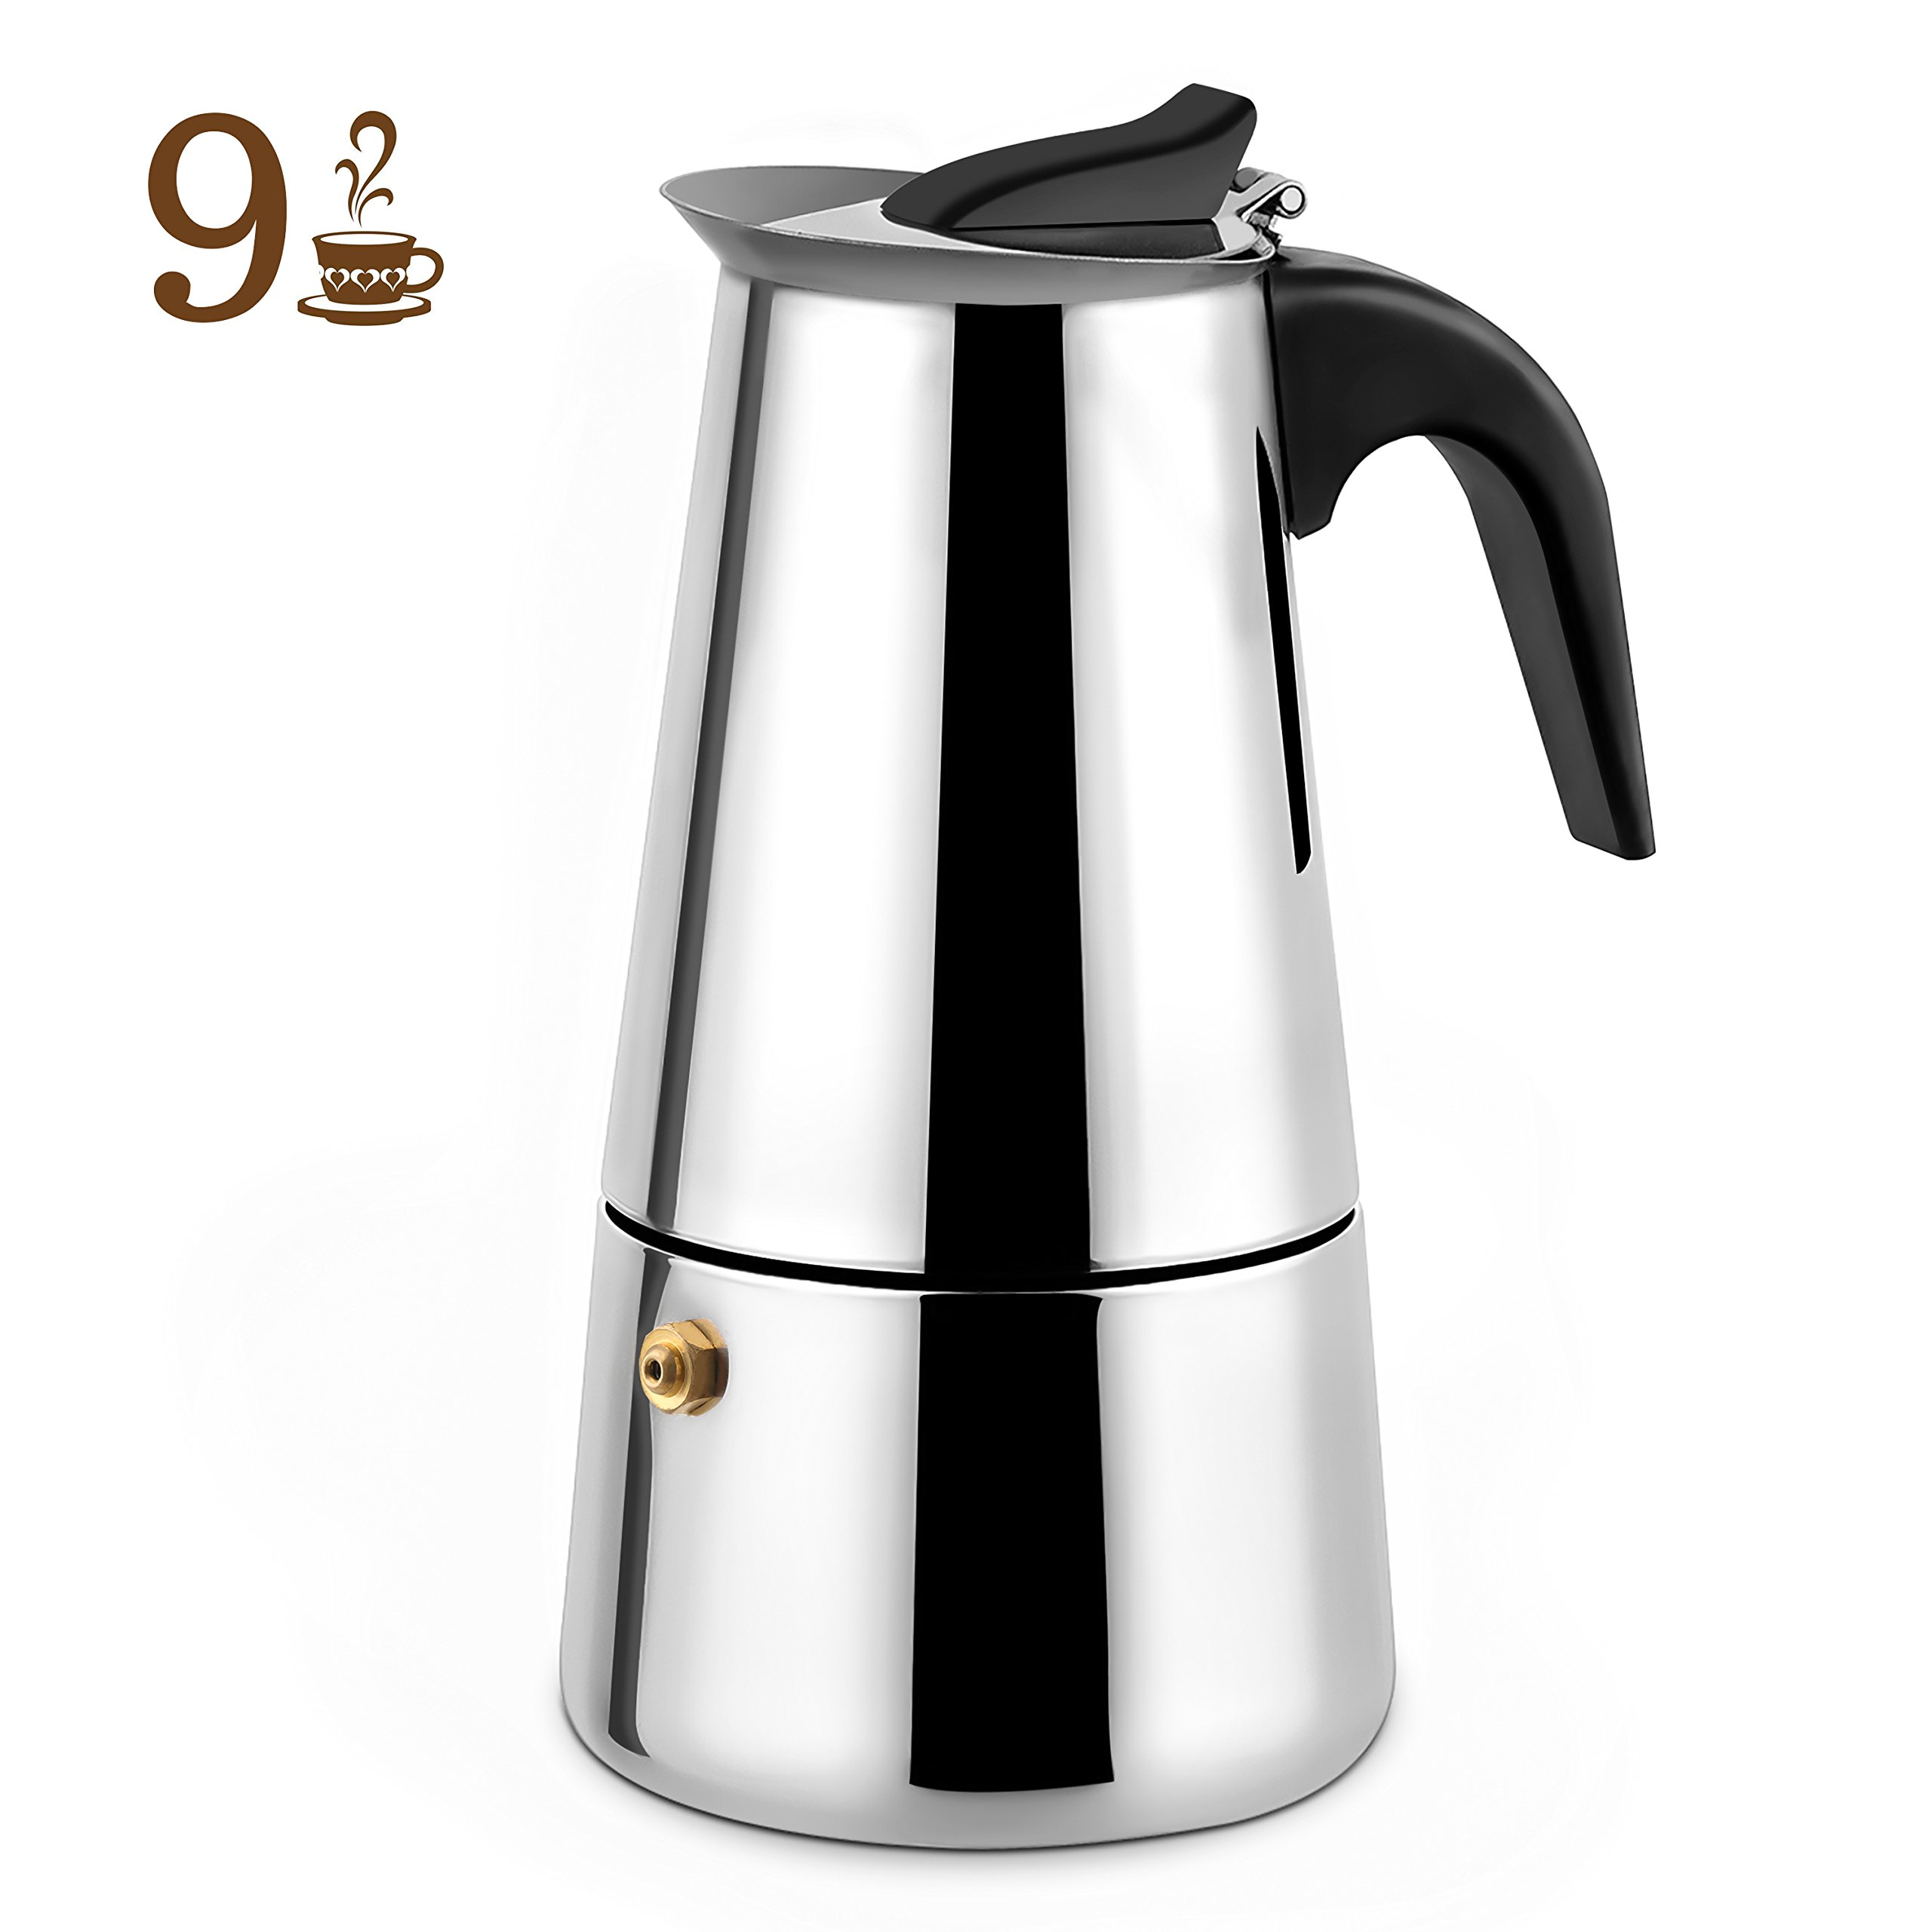 Cheap Manual Espresso Pot Find Deals On Line At Rok Presso Maker Classic Get Quotations Stovetop Stainless Steel Moka Coffee 9 Cup By Youlanda